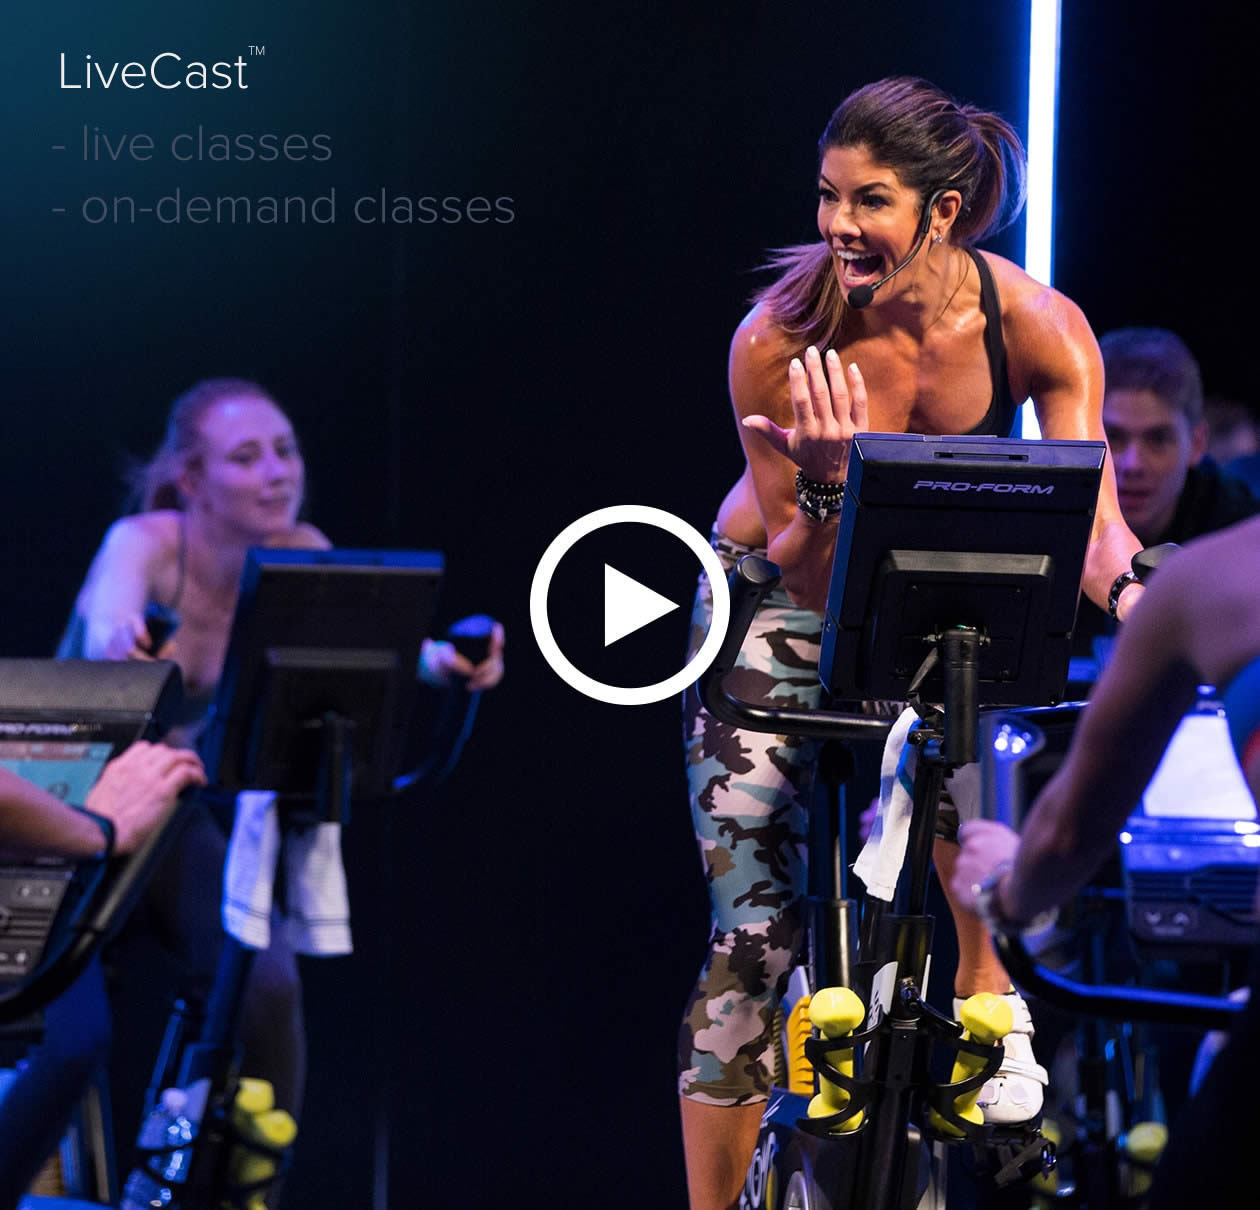 The ProForm TDF Pro comes with studio classes streamed daily available on-demand